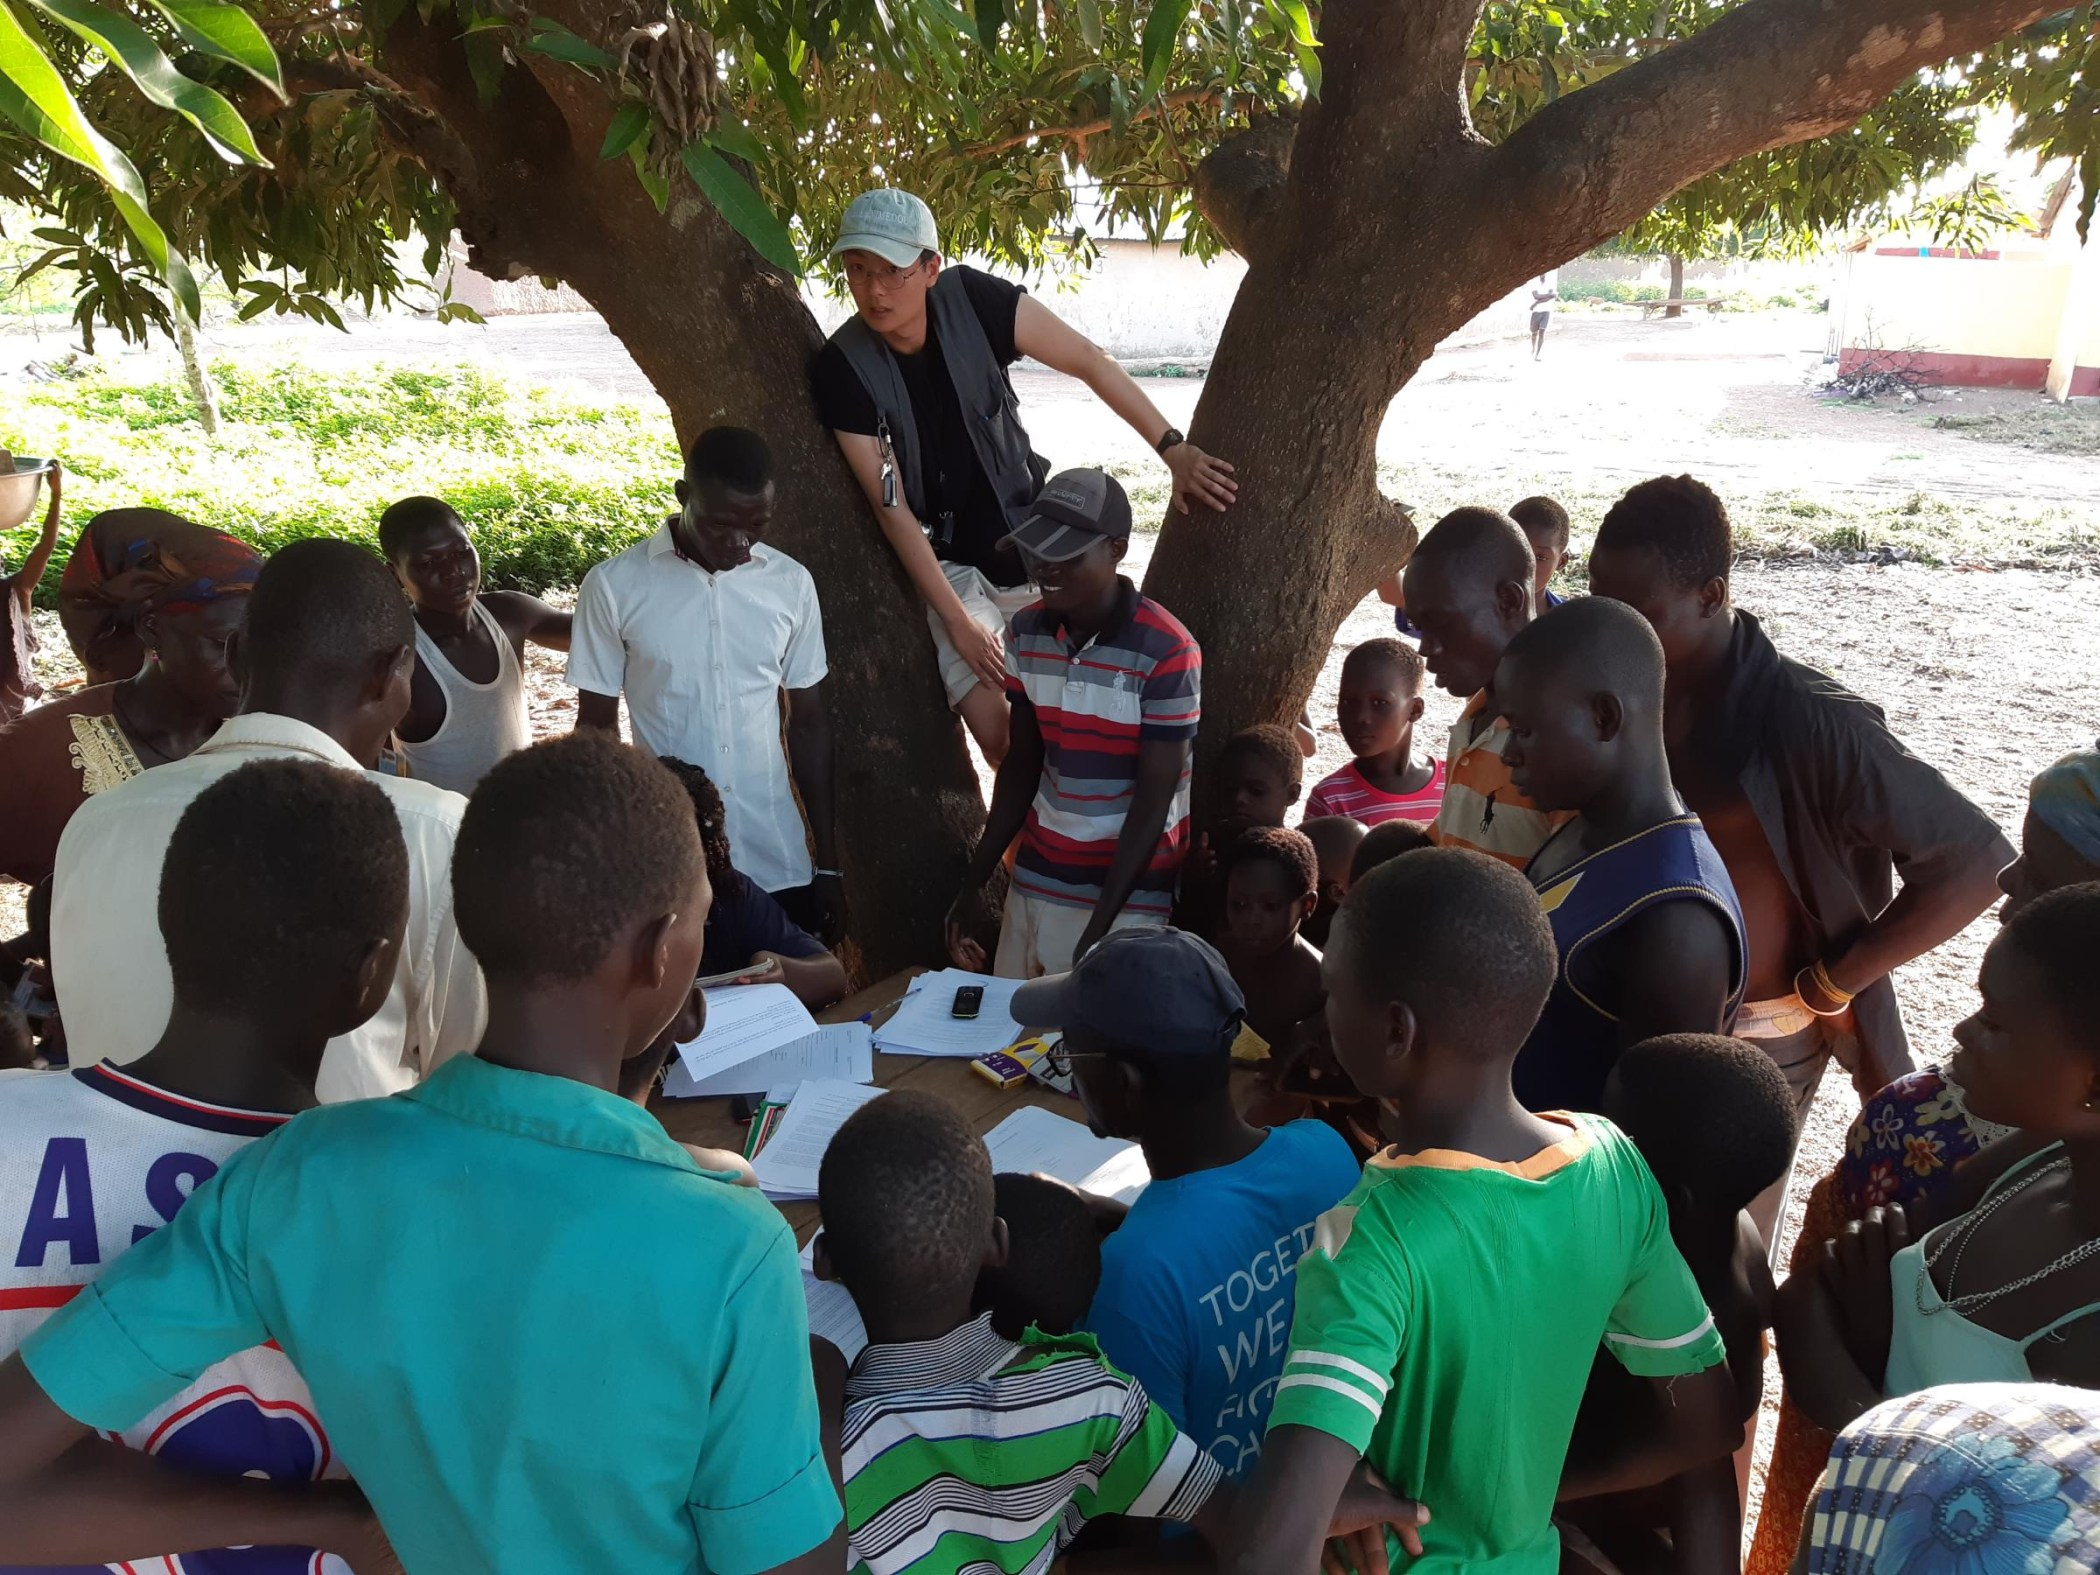 Harry sits in the crook of a tree with group of people while team collects data